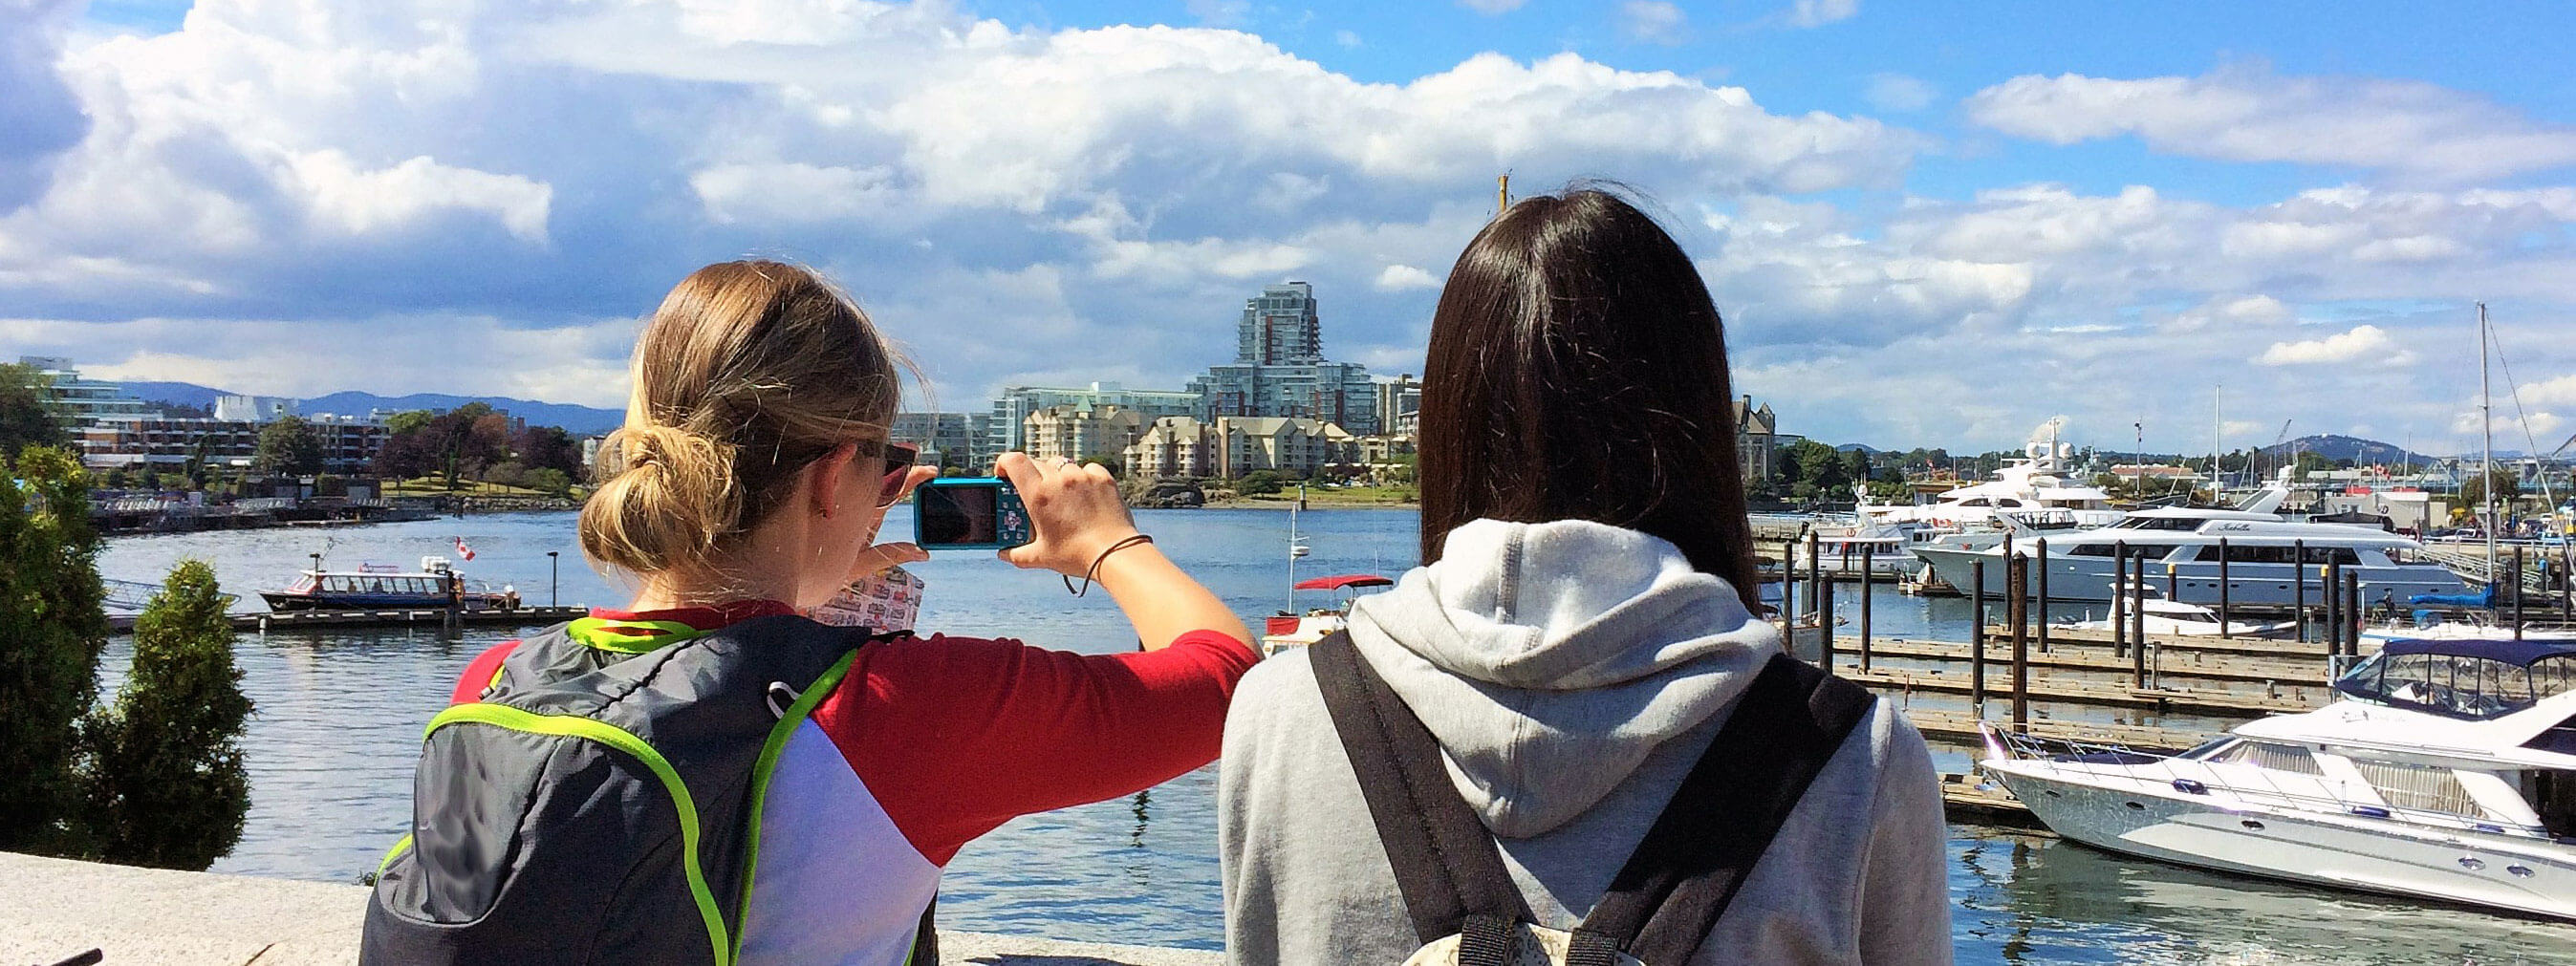 Students taking pictures in Victoria BC, Canada